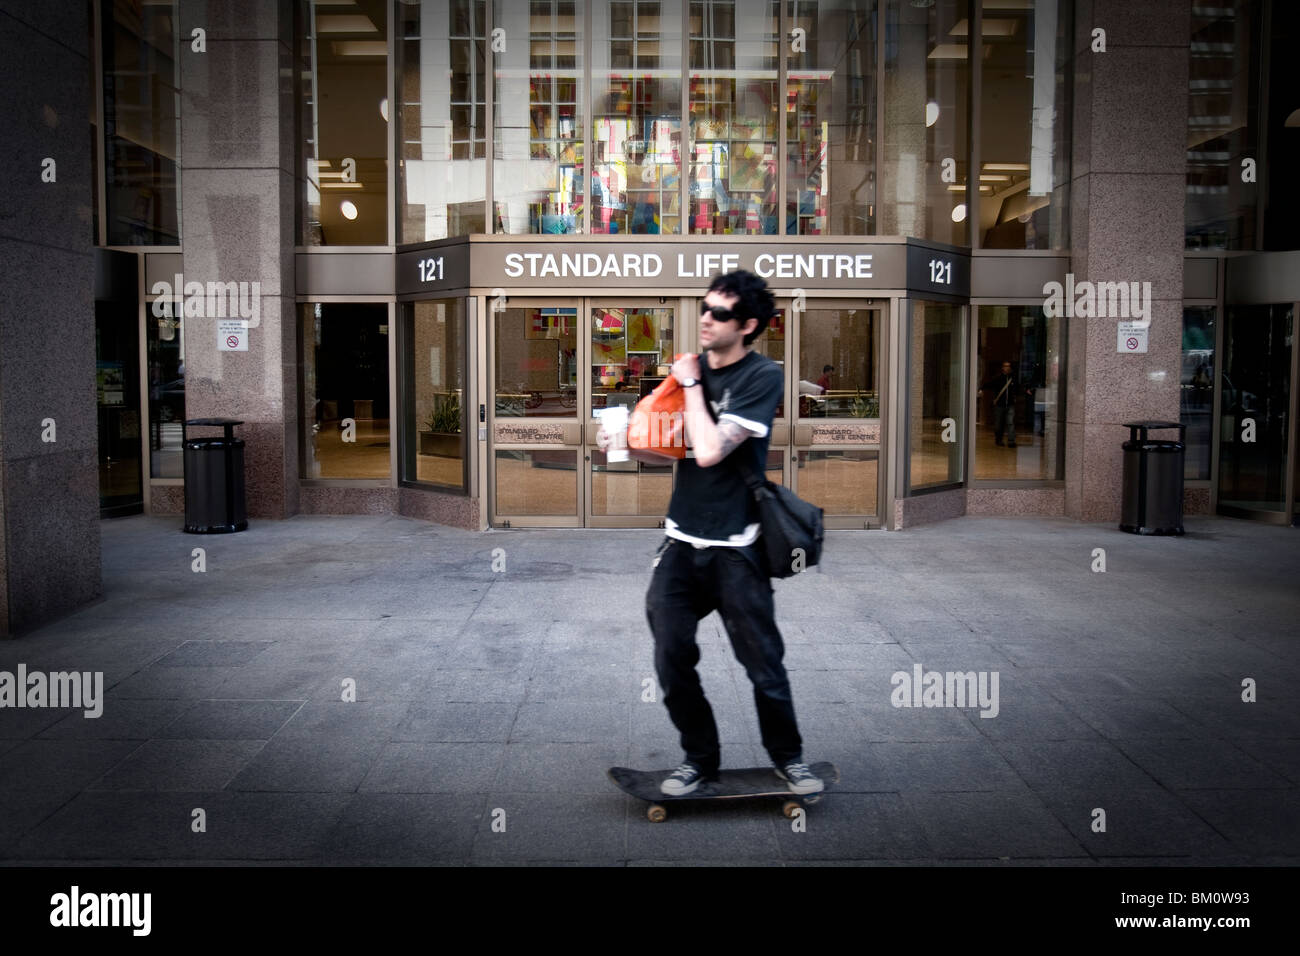 A man on a skateboard rides in front of a the Standard Life Centre in Toronto financial district - Stock Image